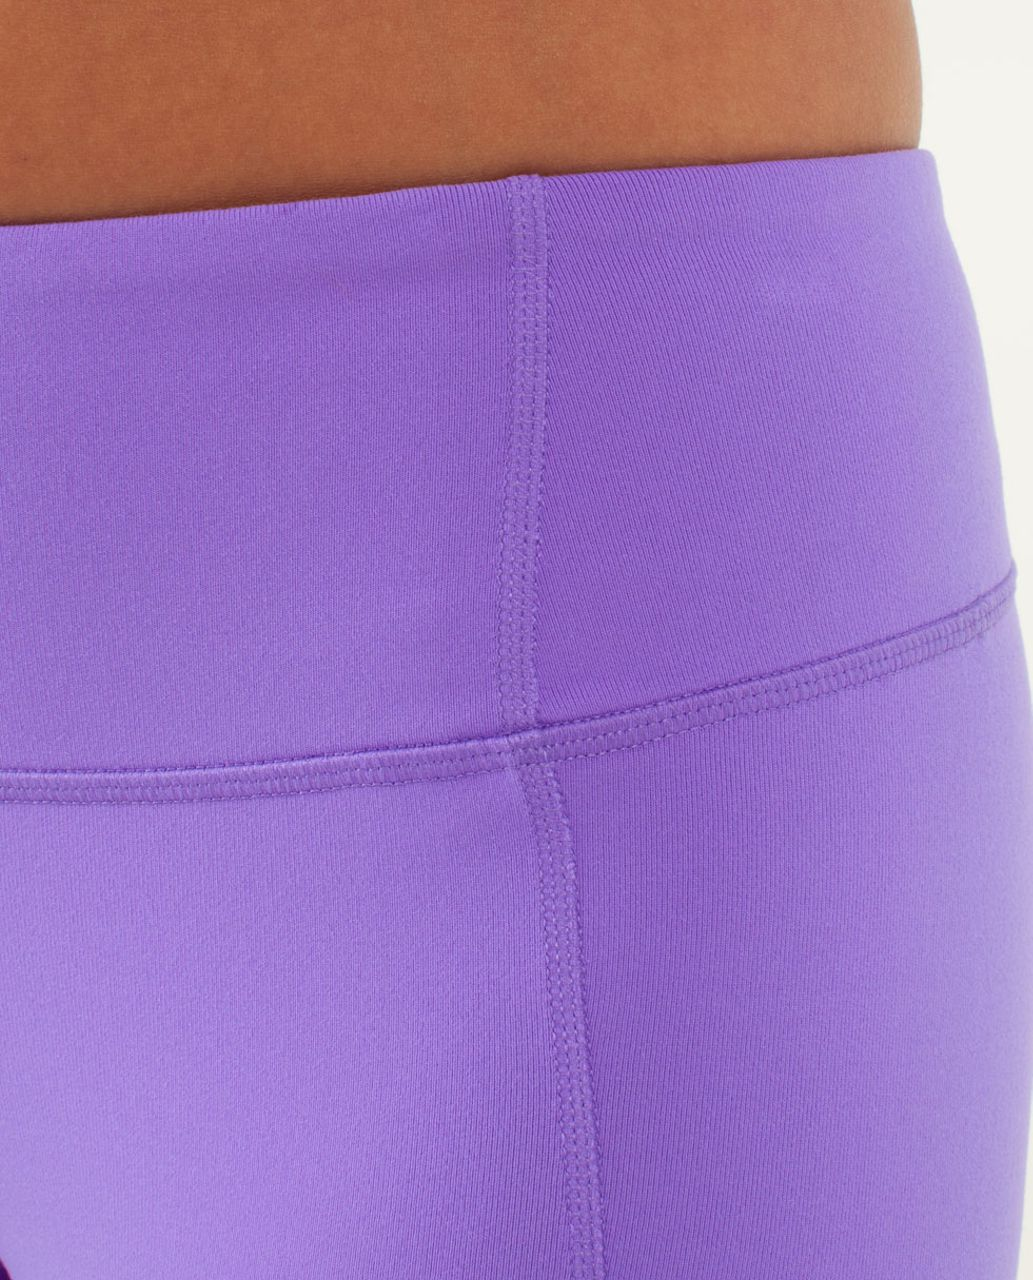 Lululemon Gather & Crow Crop - Power Purple / Twiggy Printed Power Purple